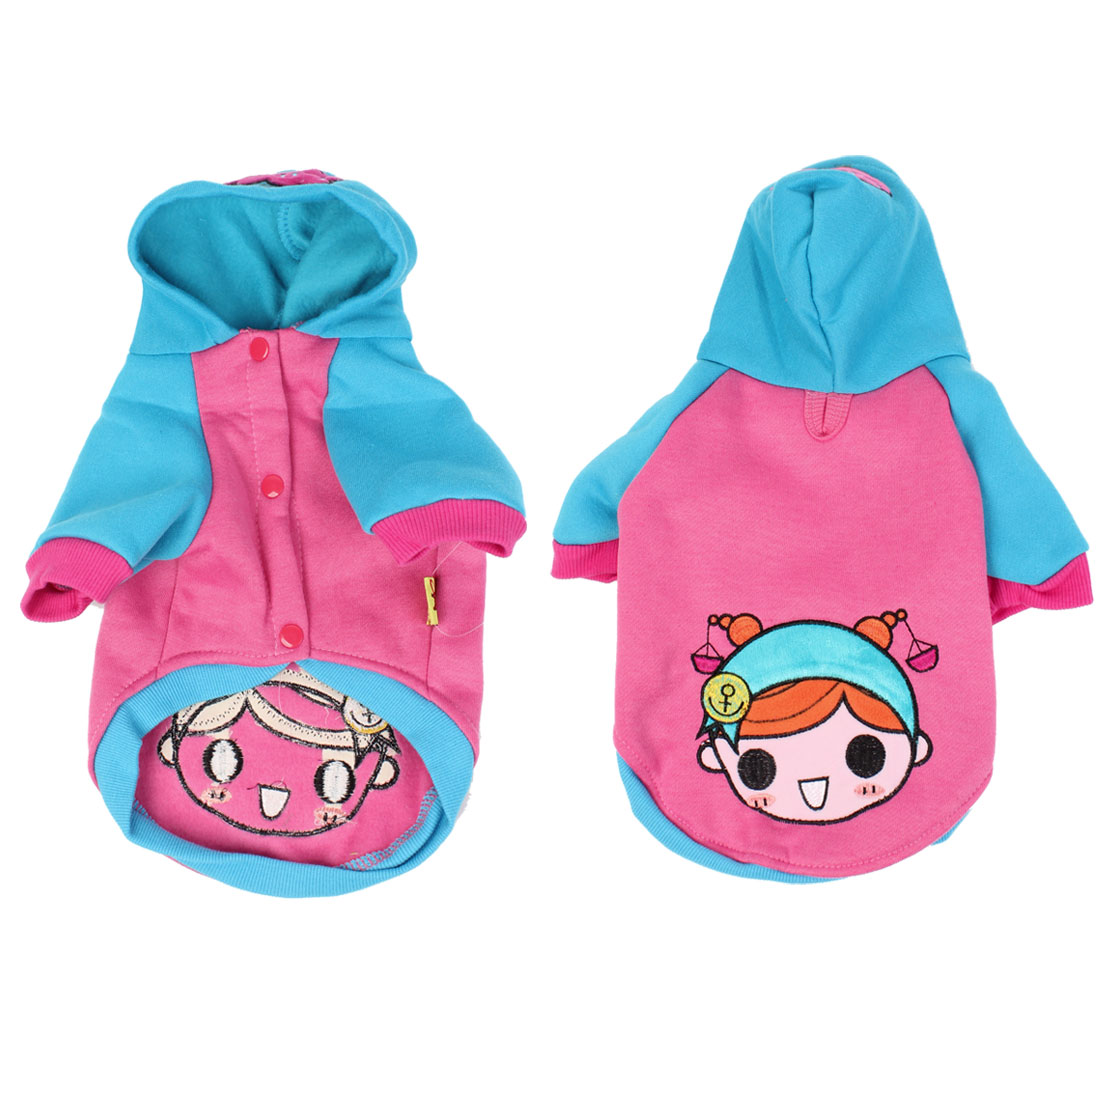 Pet Puppy Dog Blue Pink Cartoon Pattern Press Stud Button Coat Apparel Size XS